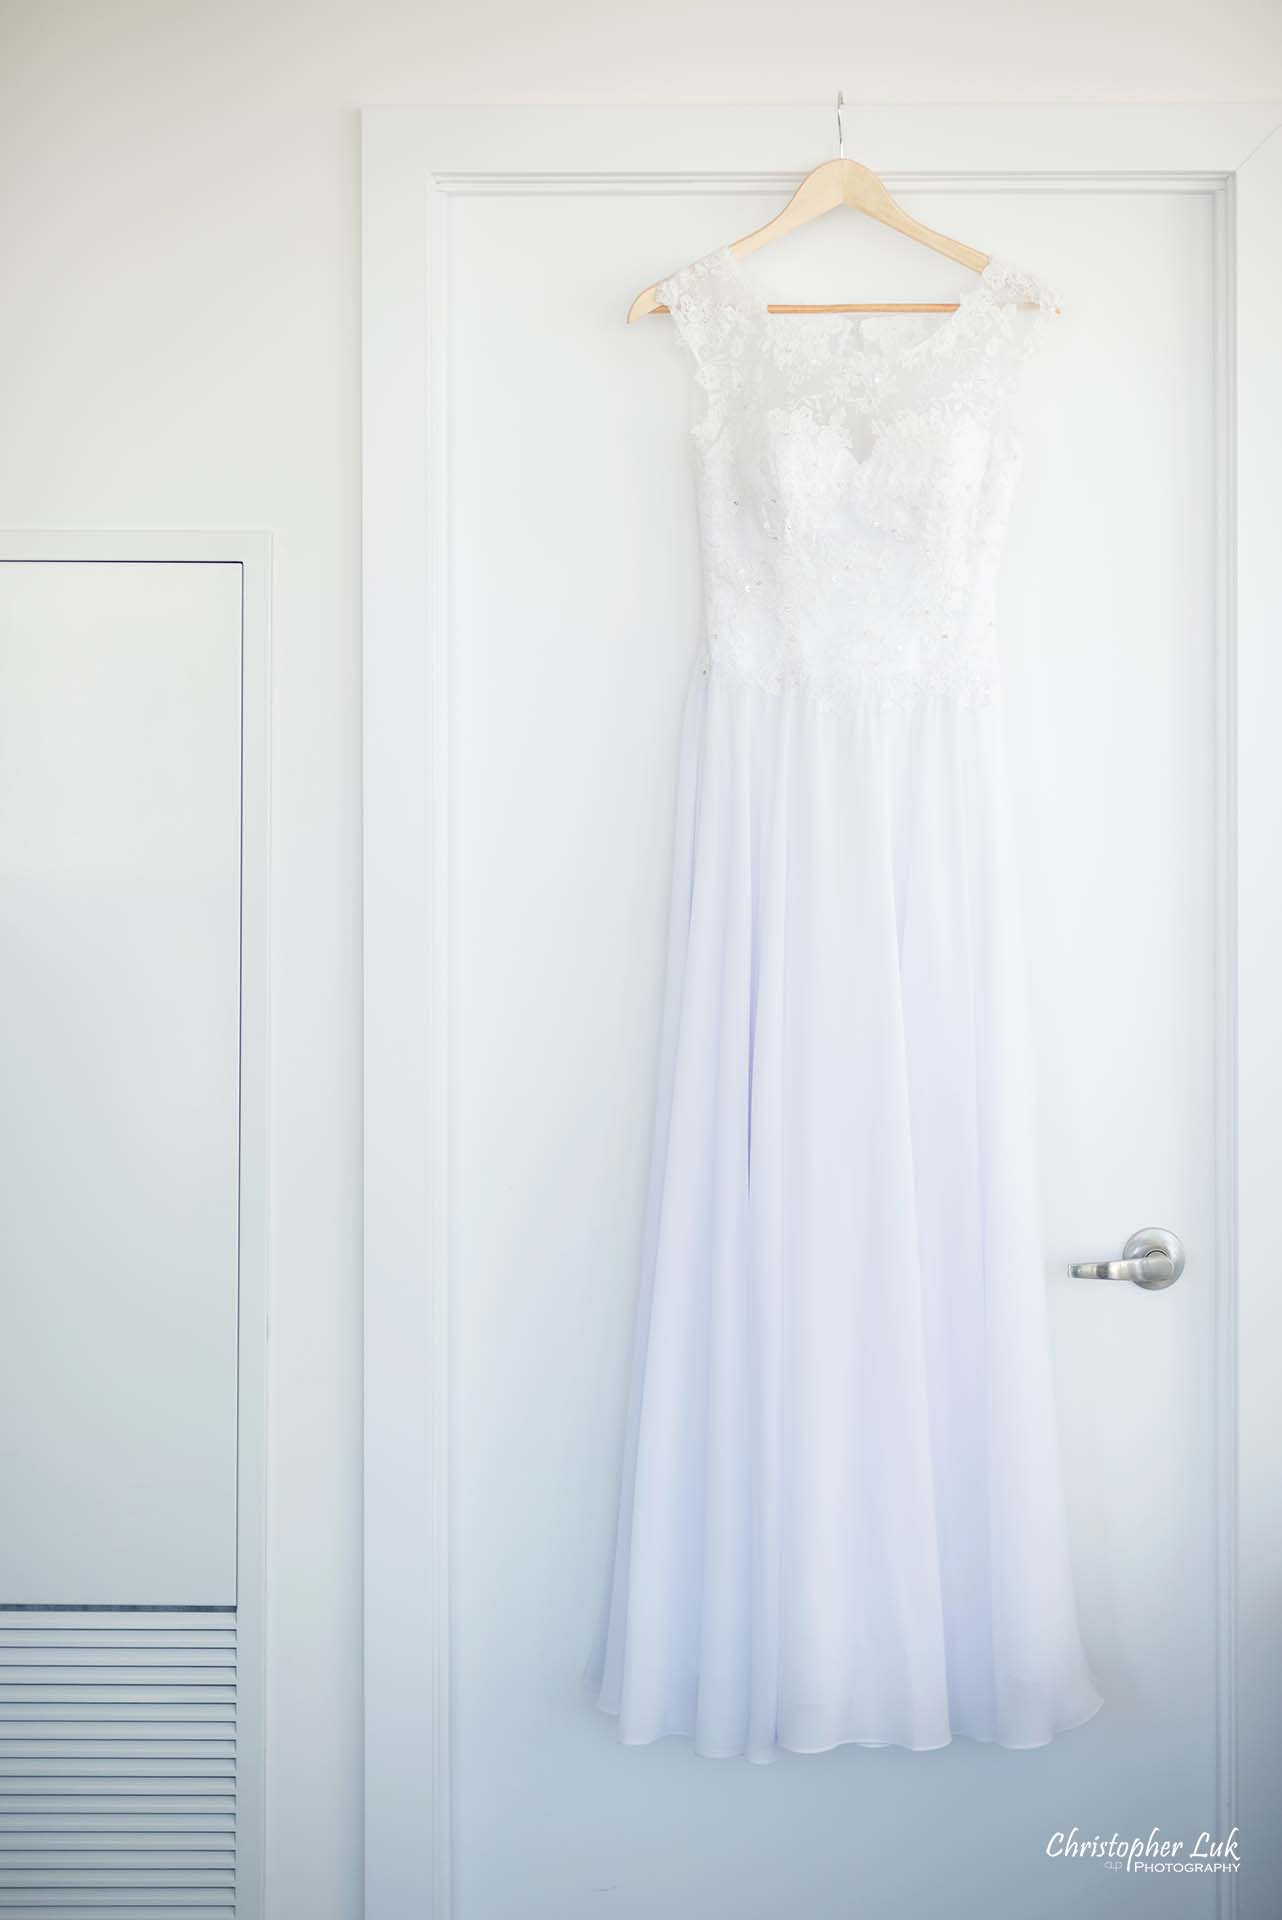 Christopher Luk Toronto Wedding Photographer - White Wedding Dress Hanging Detail